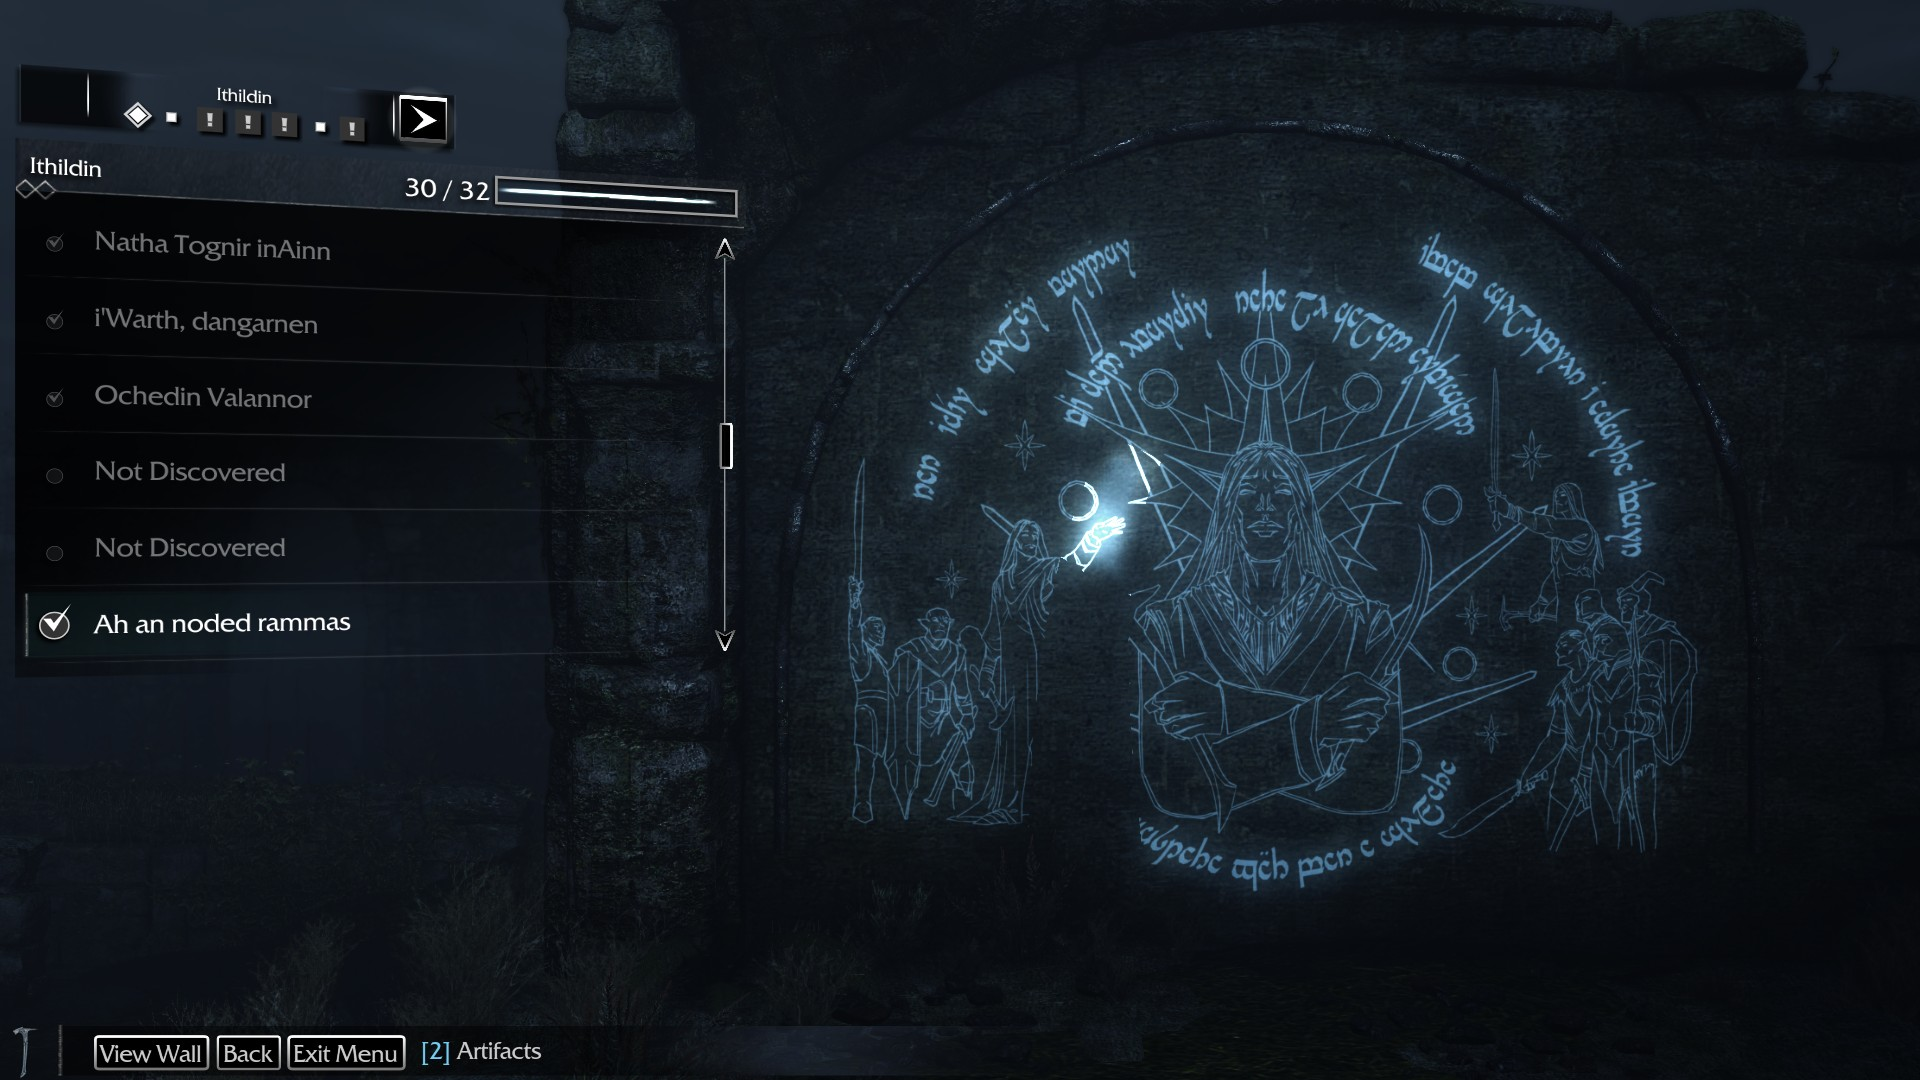 Shadow of Mordor Ithildin Locations Guide - Sea of Nurnen map